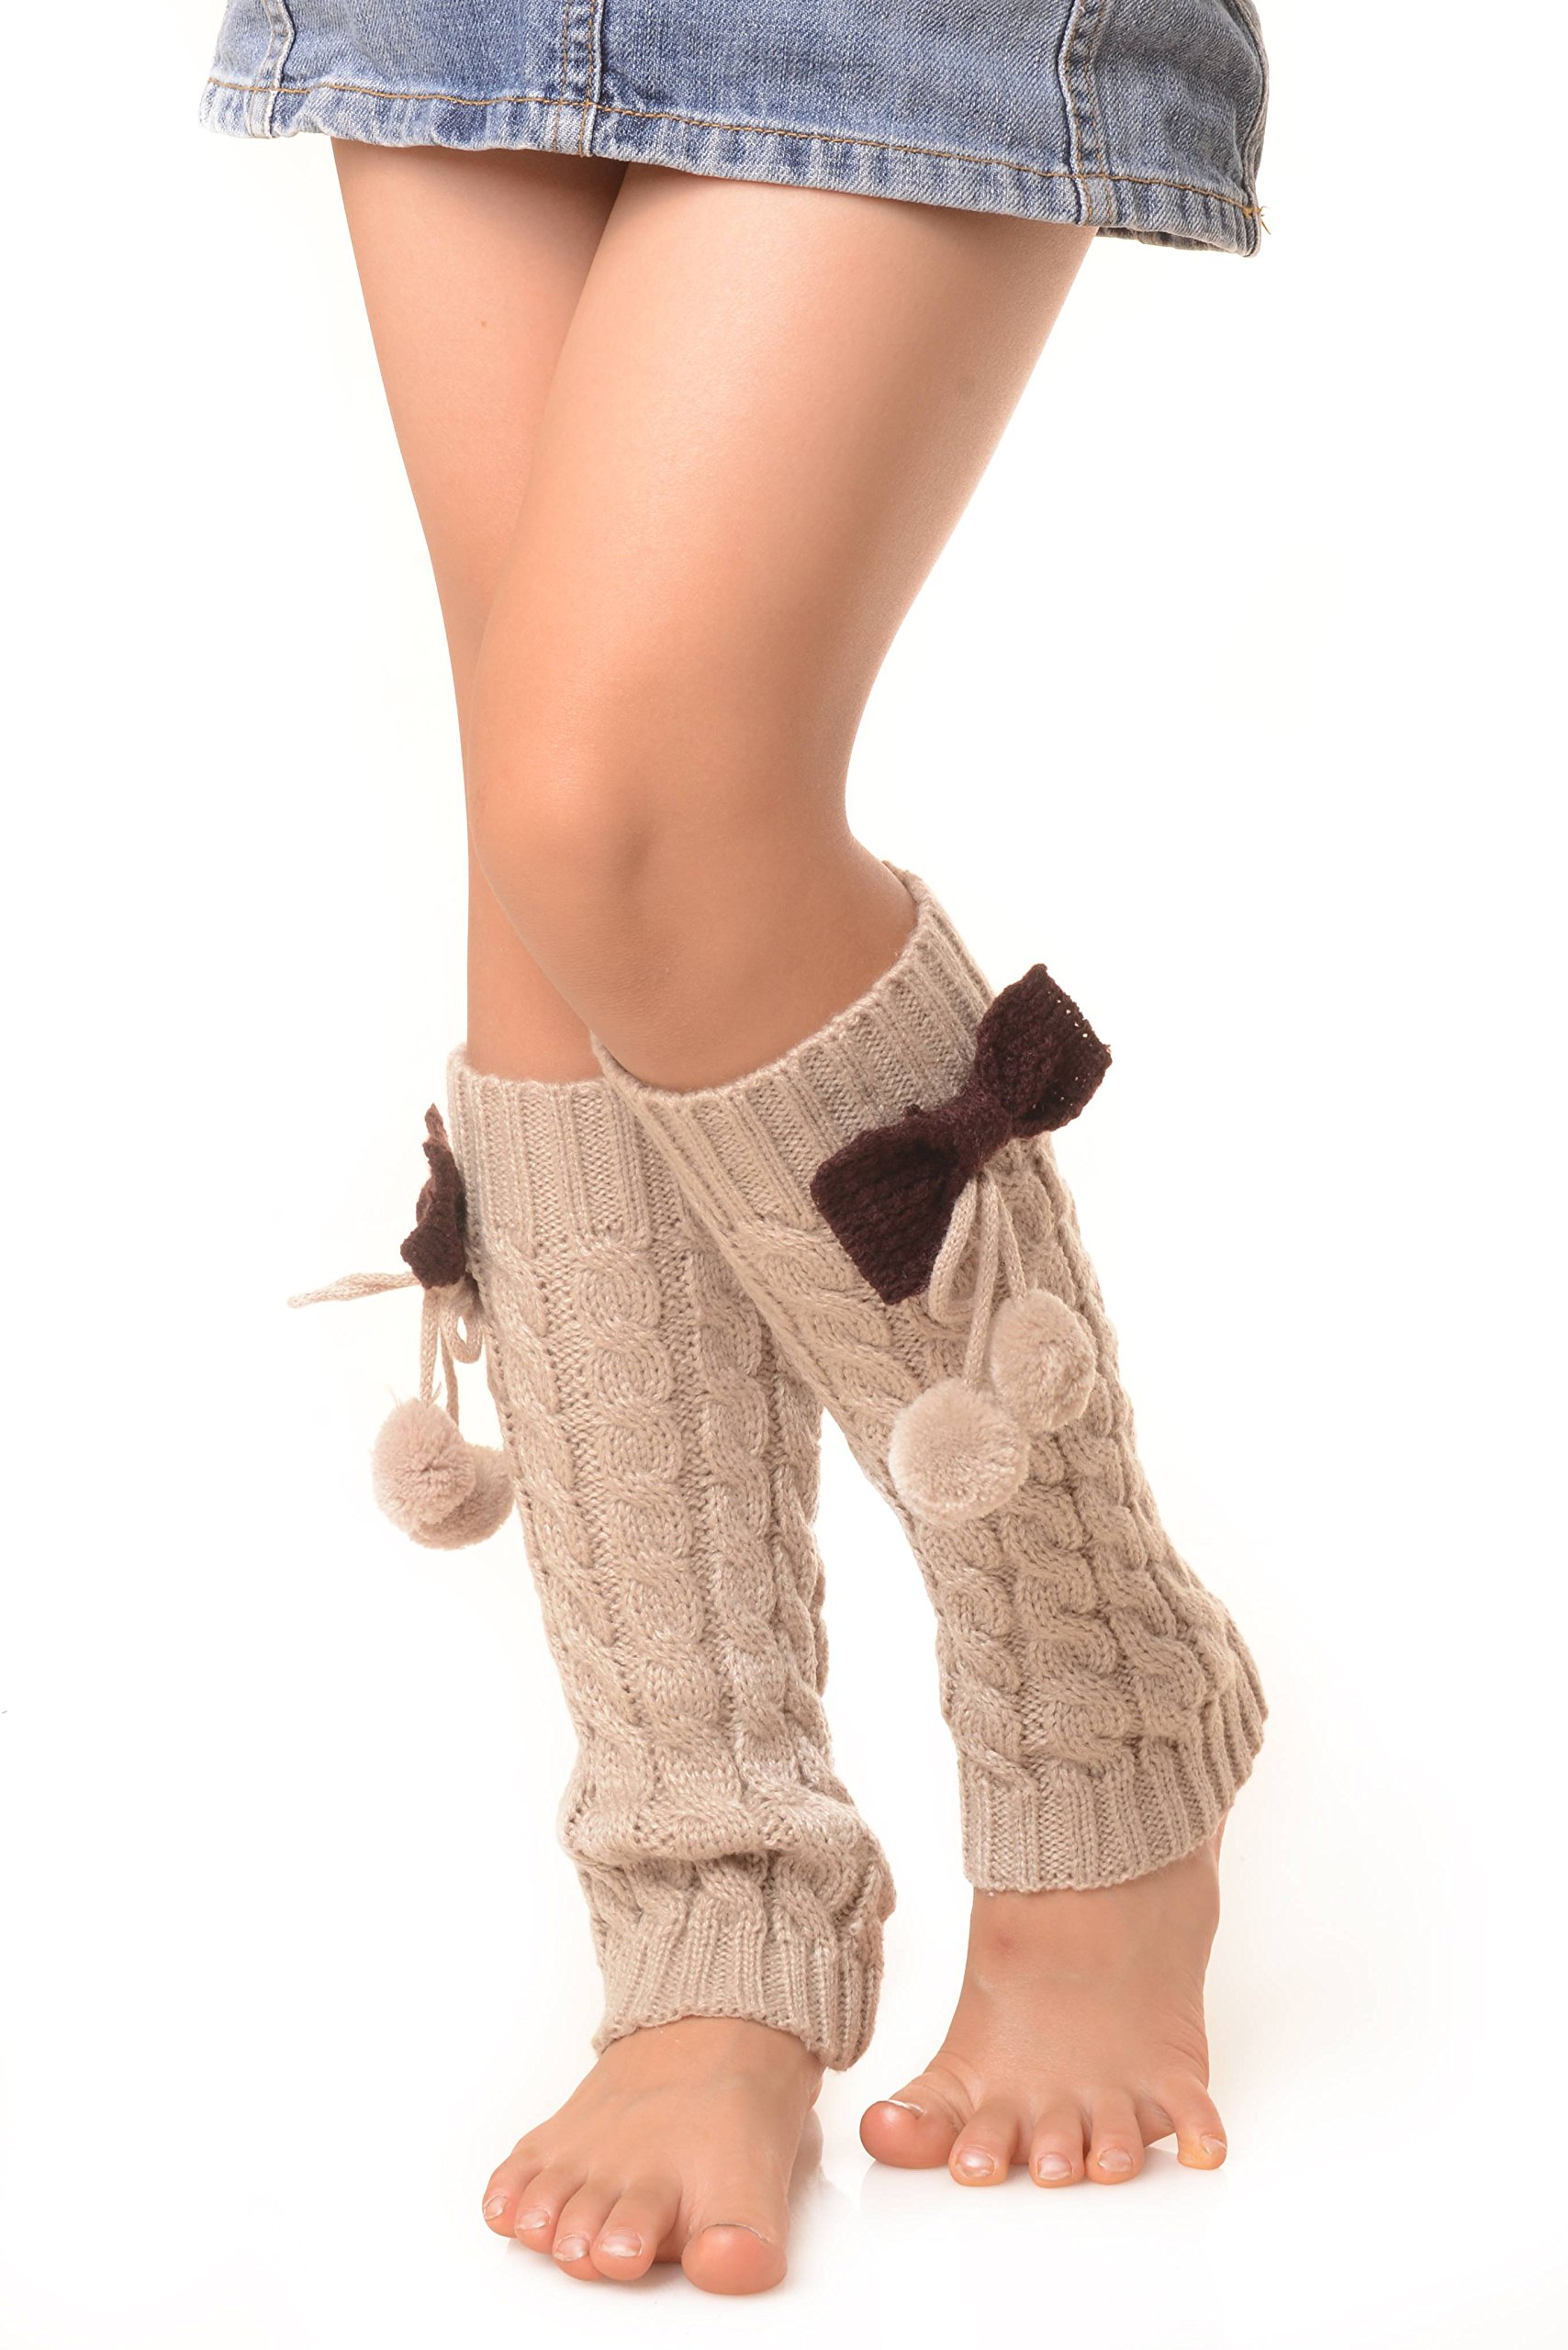 ICONOFLASH Girl's Cable Knit Leg Warmers with Bow